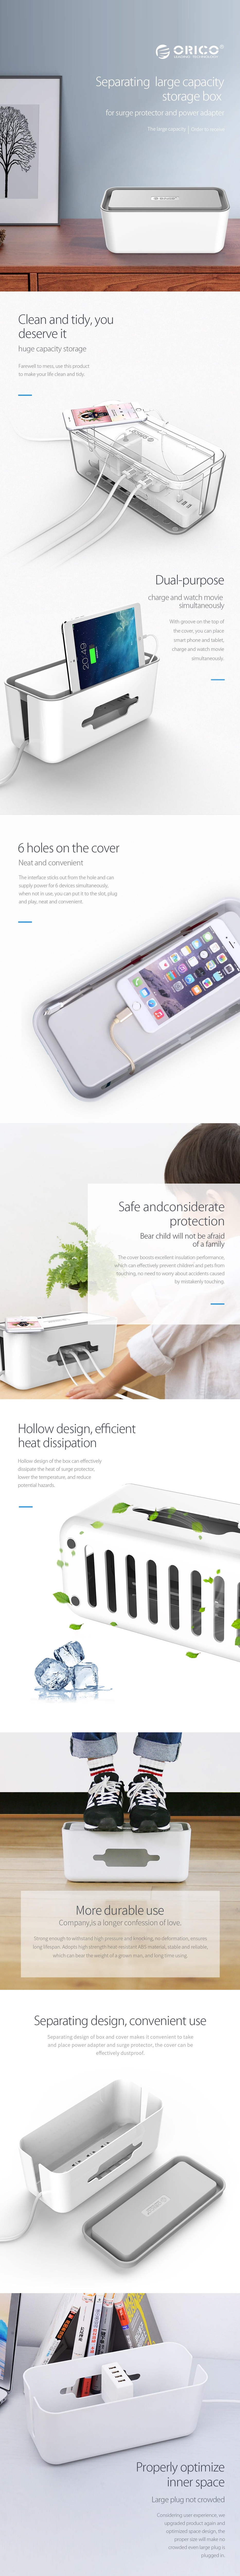 A large marketing image providing additional information about the product ORICO Storage Box for Surge Protector - Additional alt info not provided